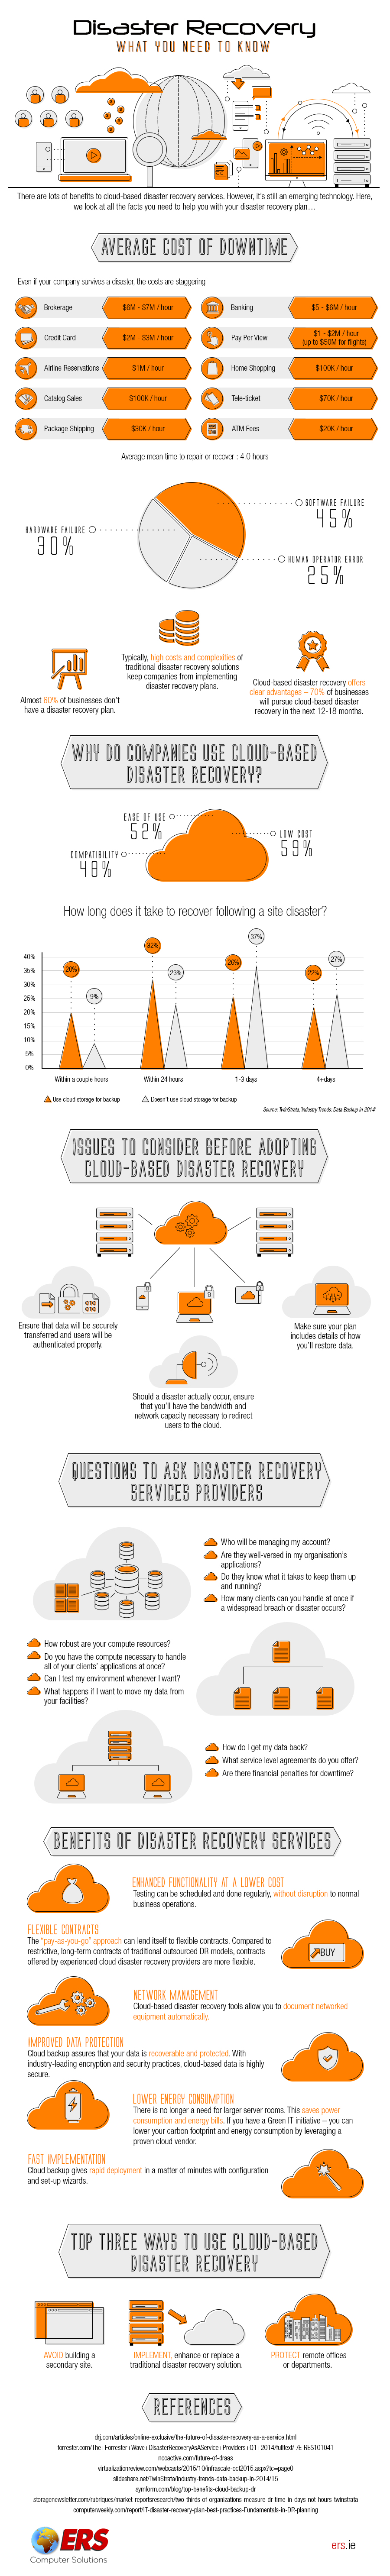 Disaster Recovery- What You Need To Know